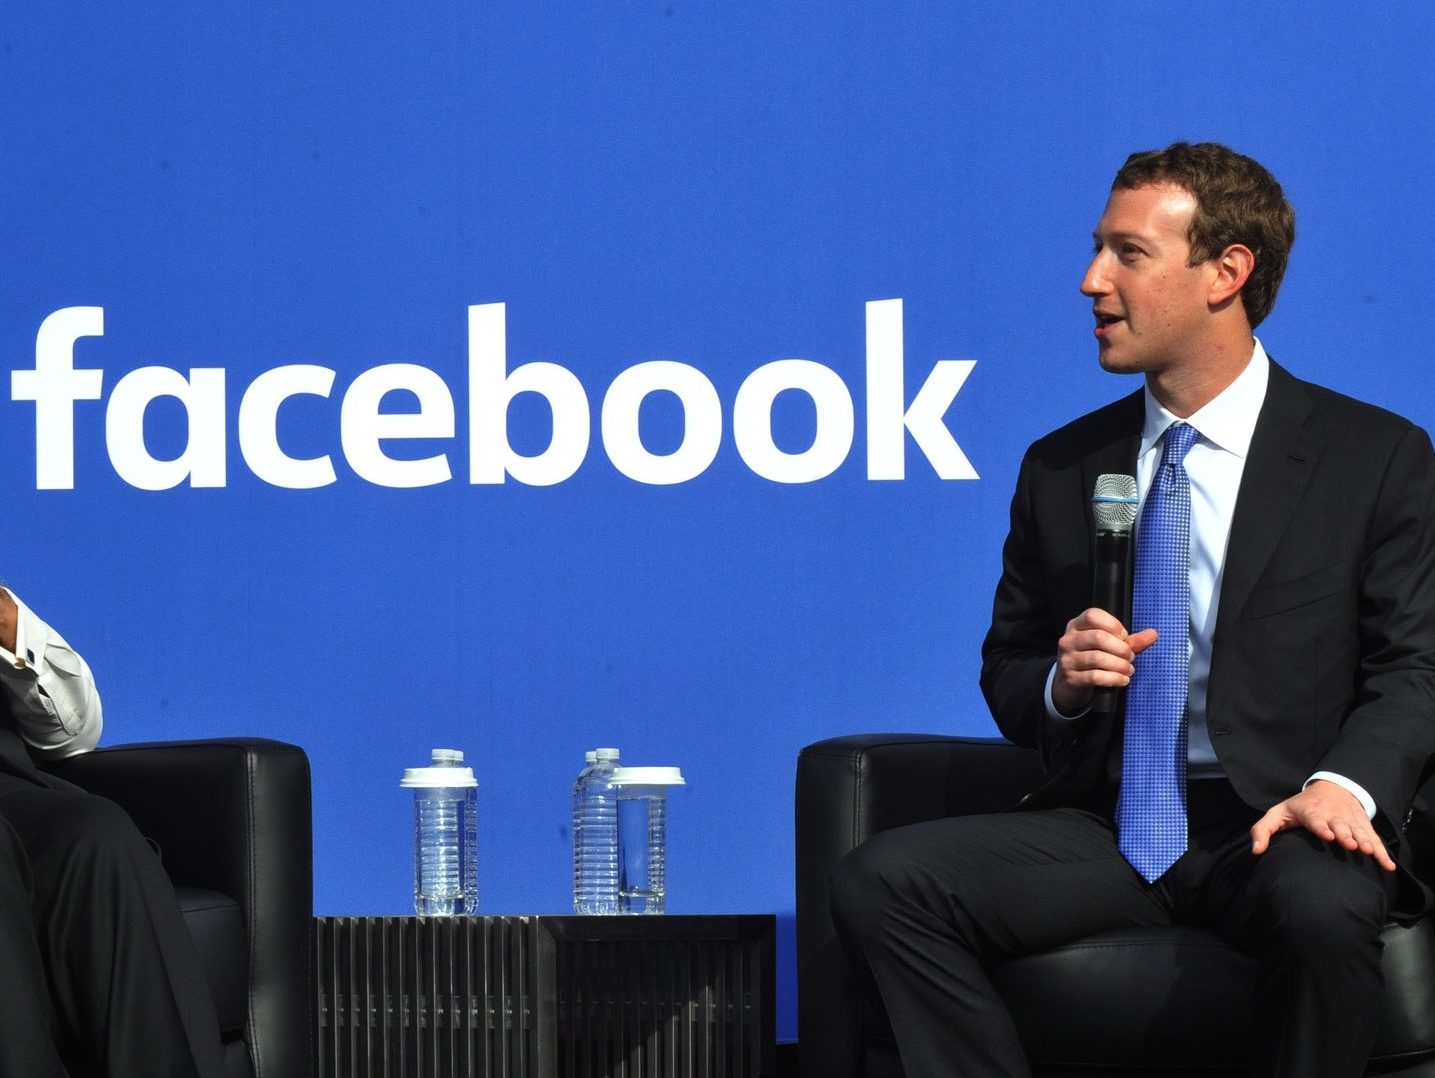 Facebook changes mean users will see less content from media in